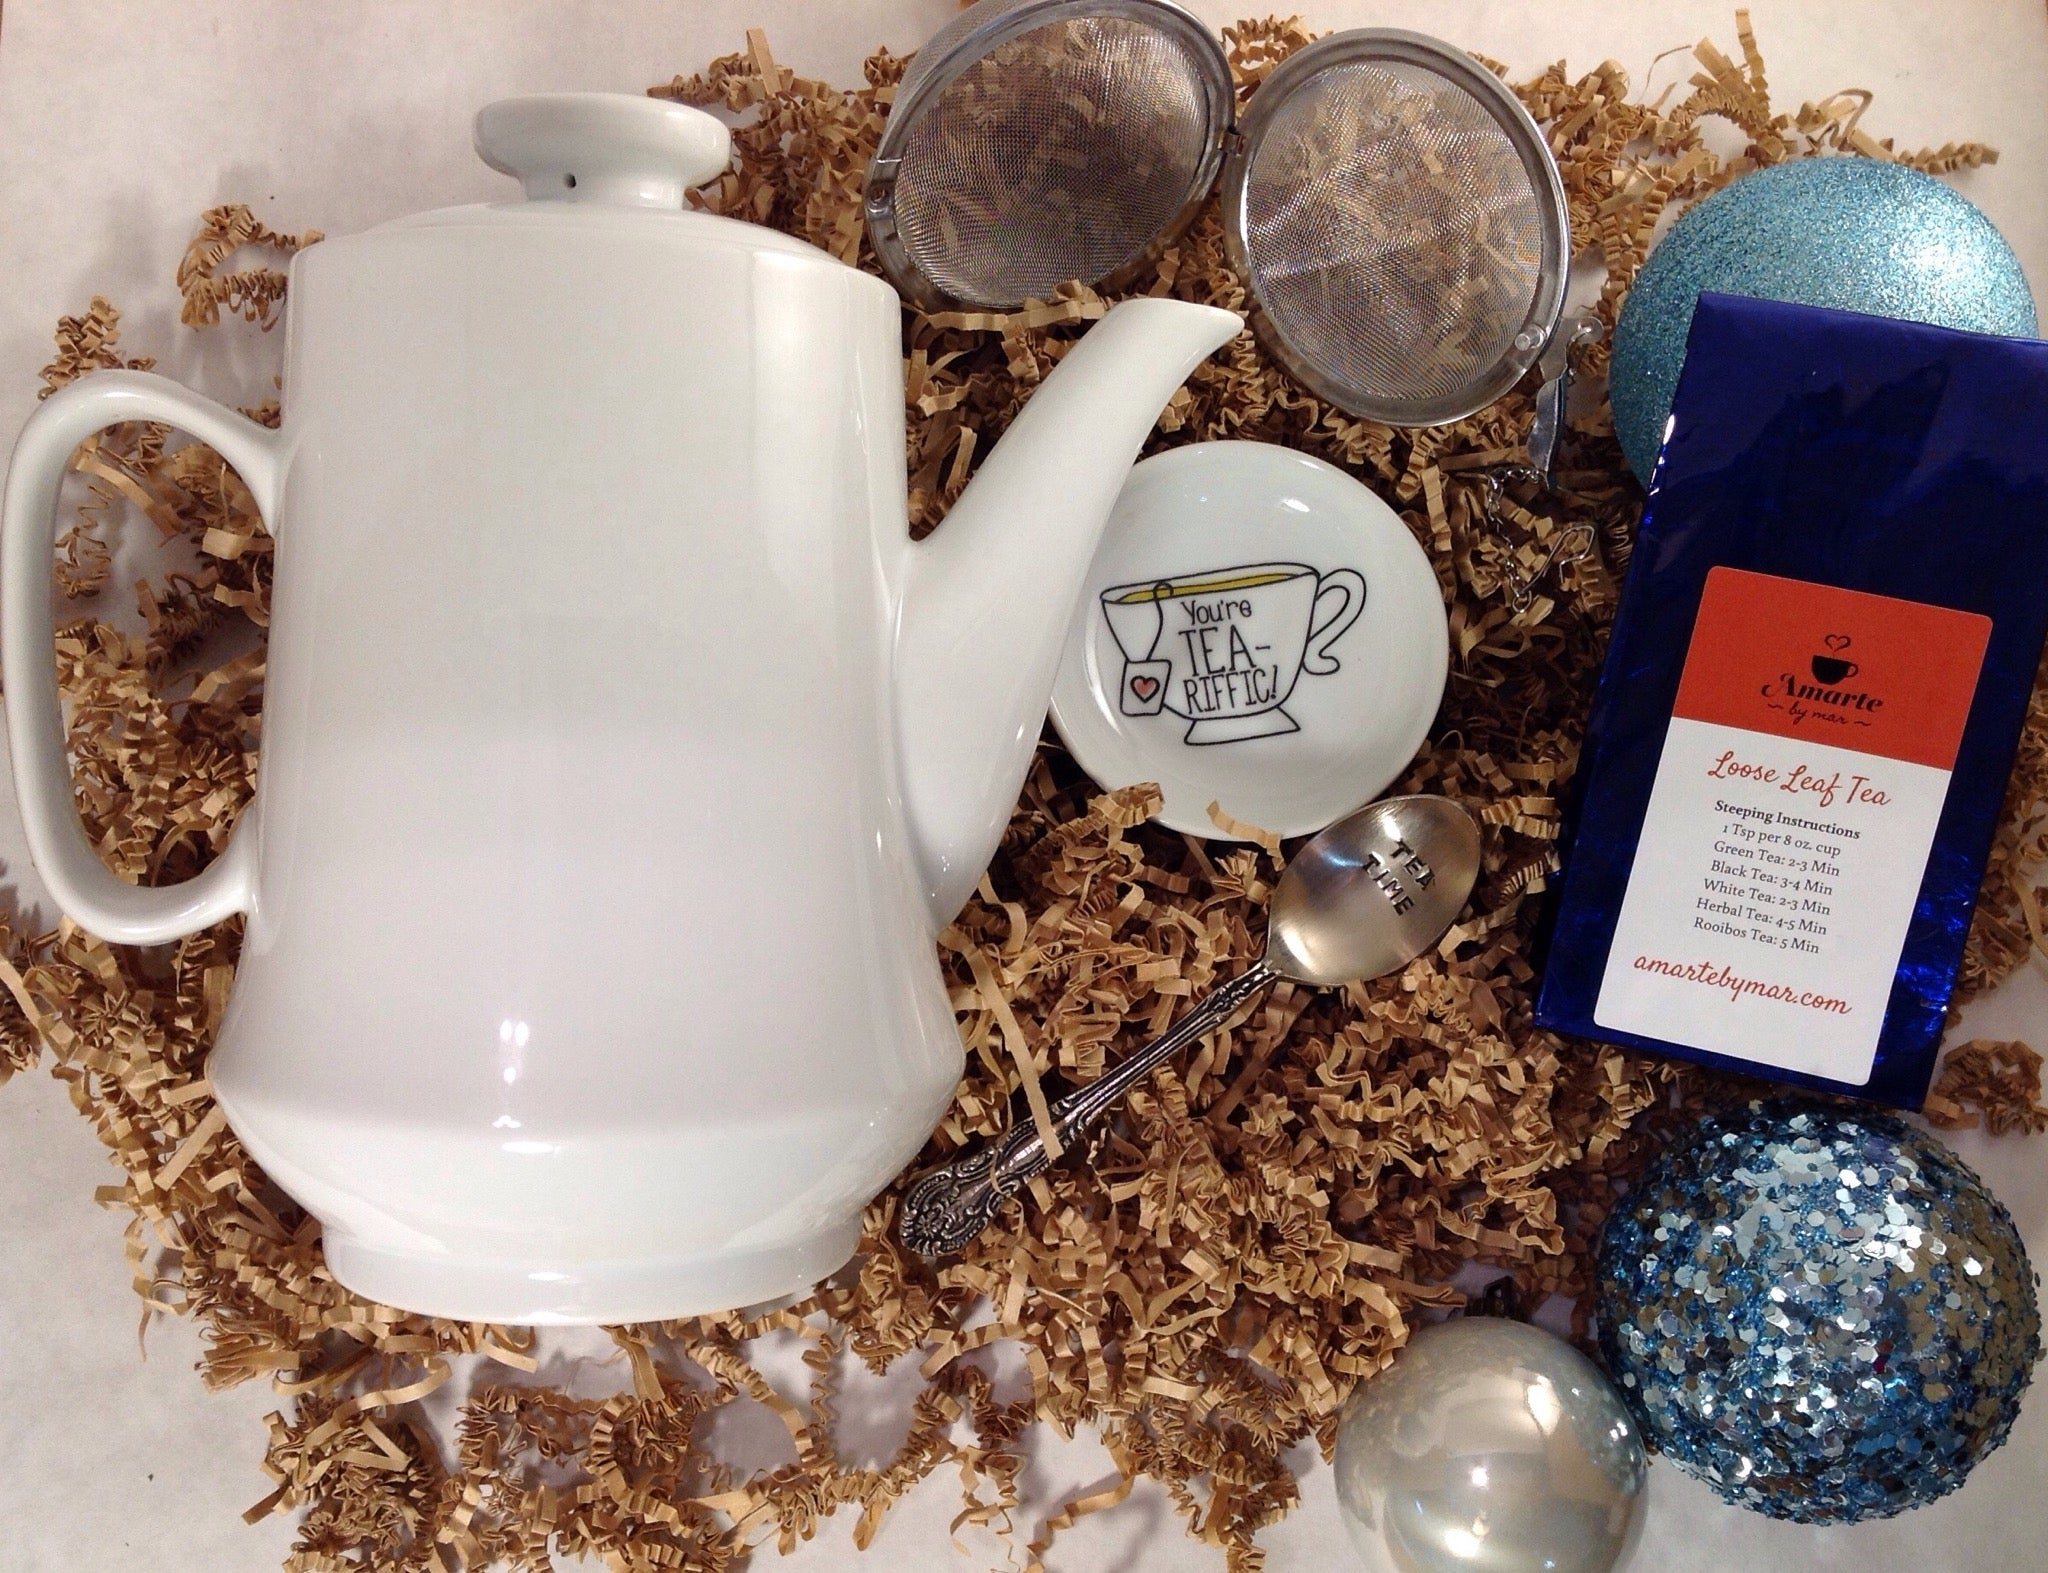 The Tea-riffic Gift Set